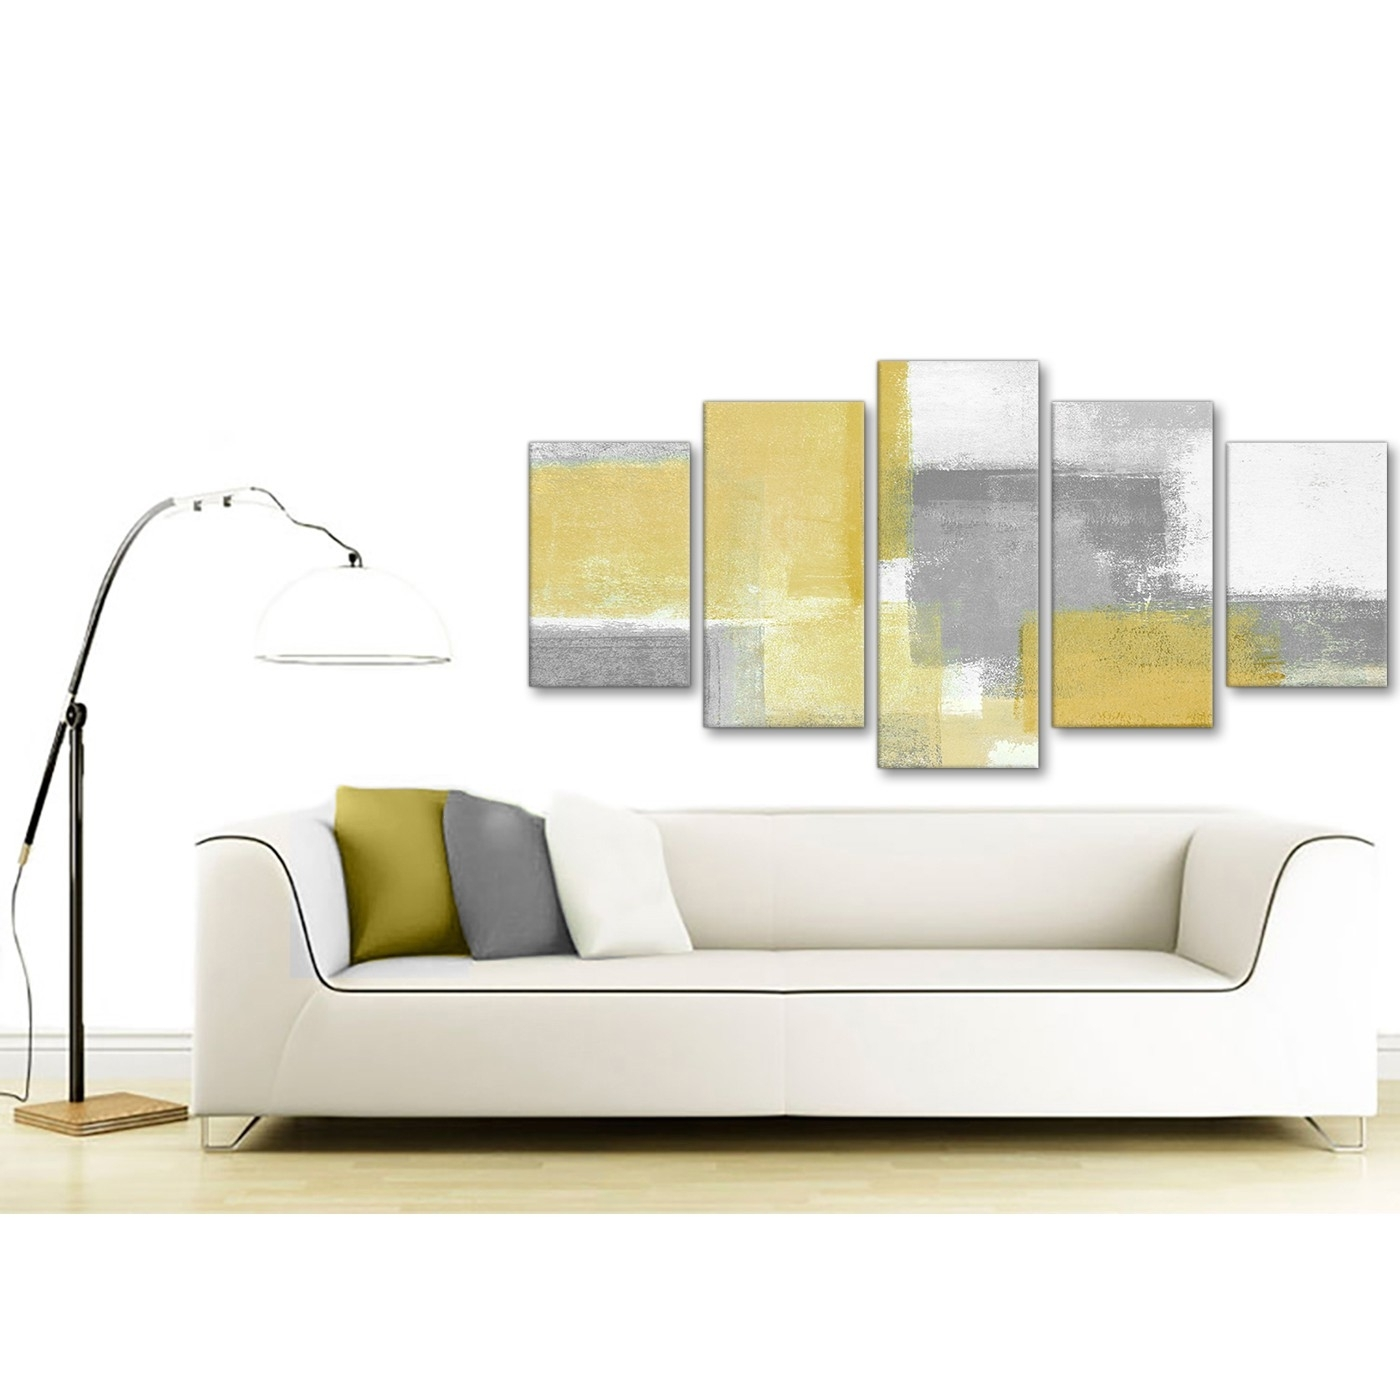 5 Piece Mustard Yellow Grey Abstract Living Room Canvas Wall Art With Regard To 2017 Abstract Living Room Wall Art (View 12 of 20)